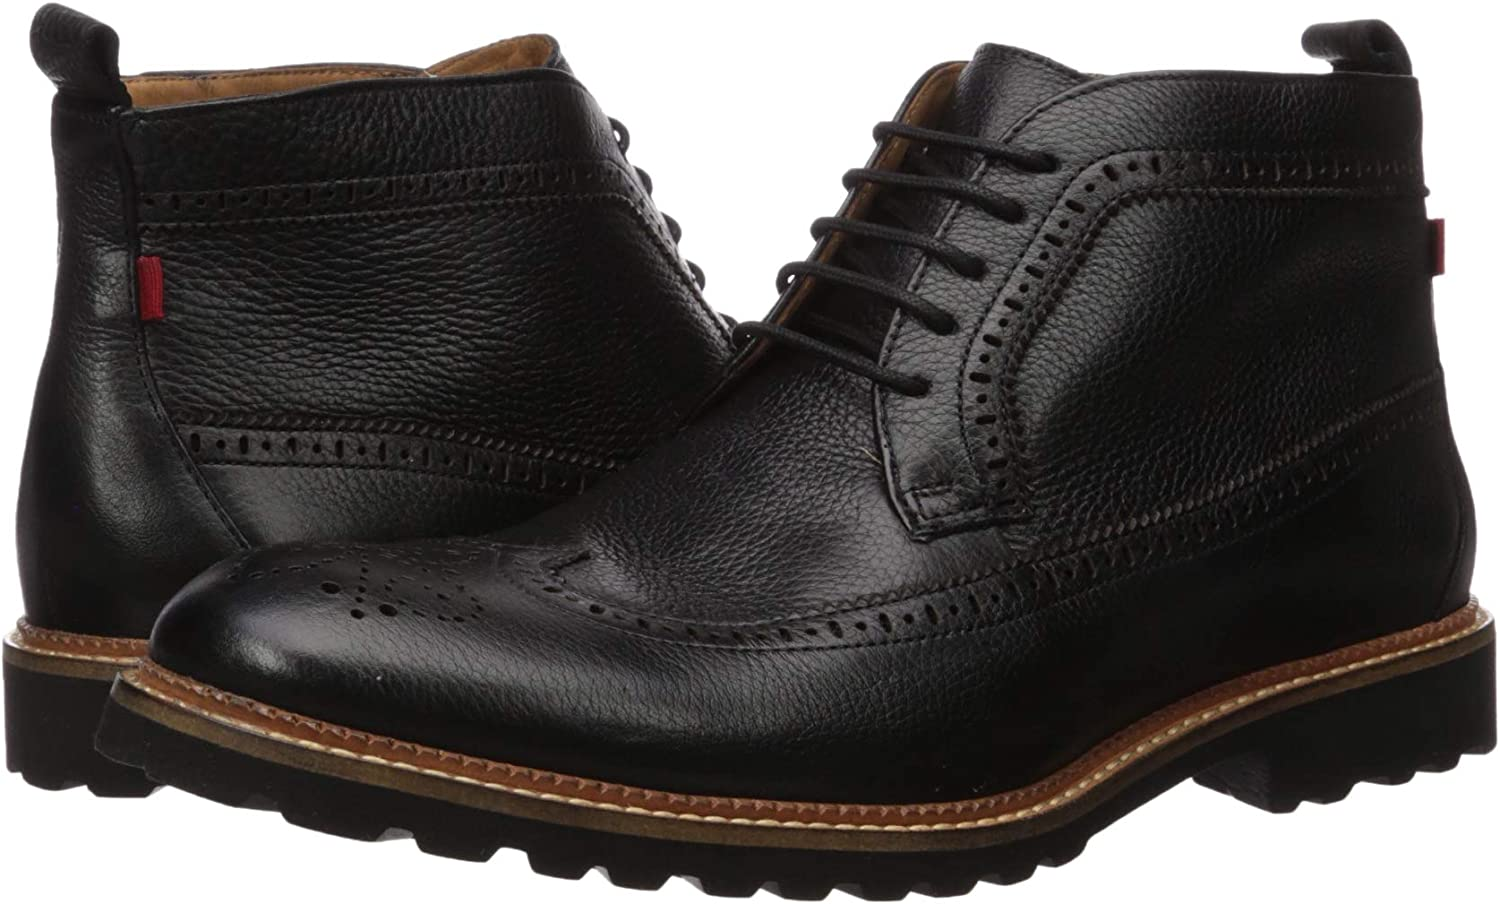 MARC JOSEPH NEW YORK Mens Leather Extra Lightweight Ankle Boot with Wingtip Detail